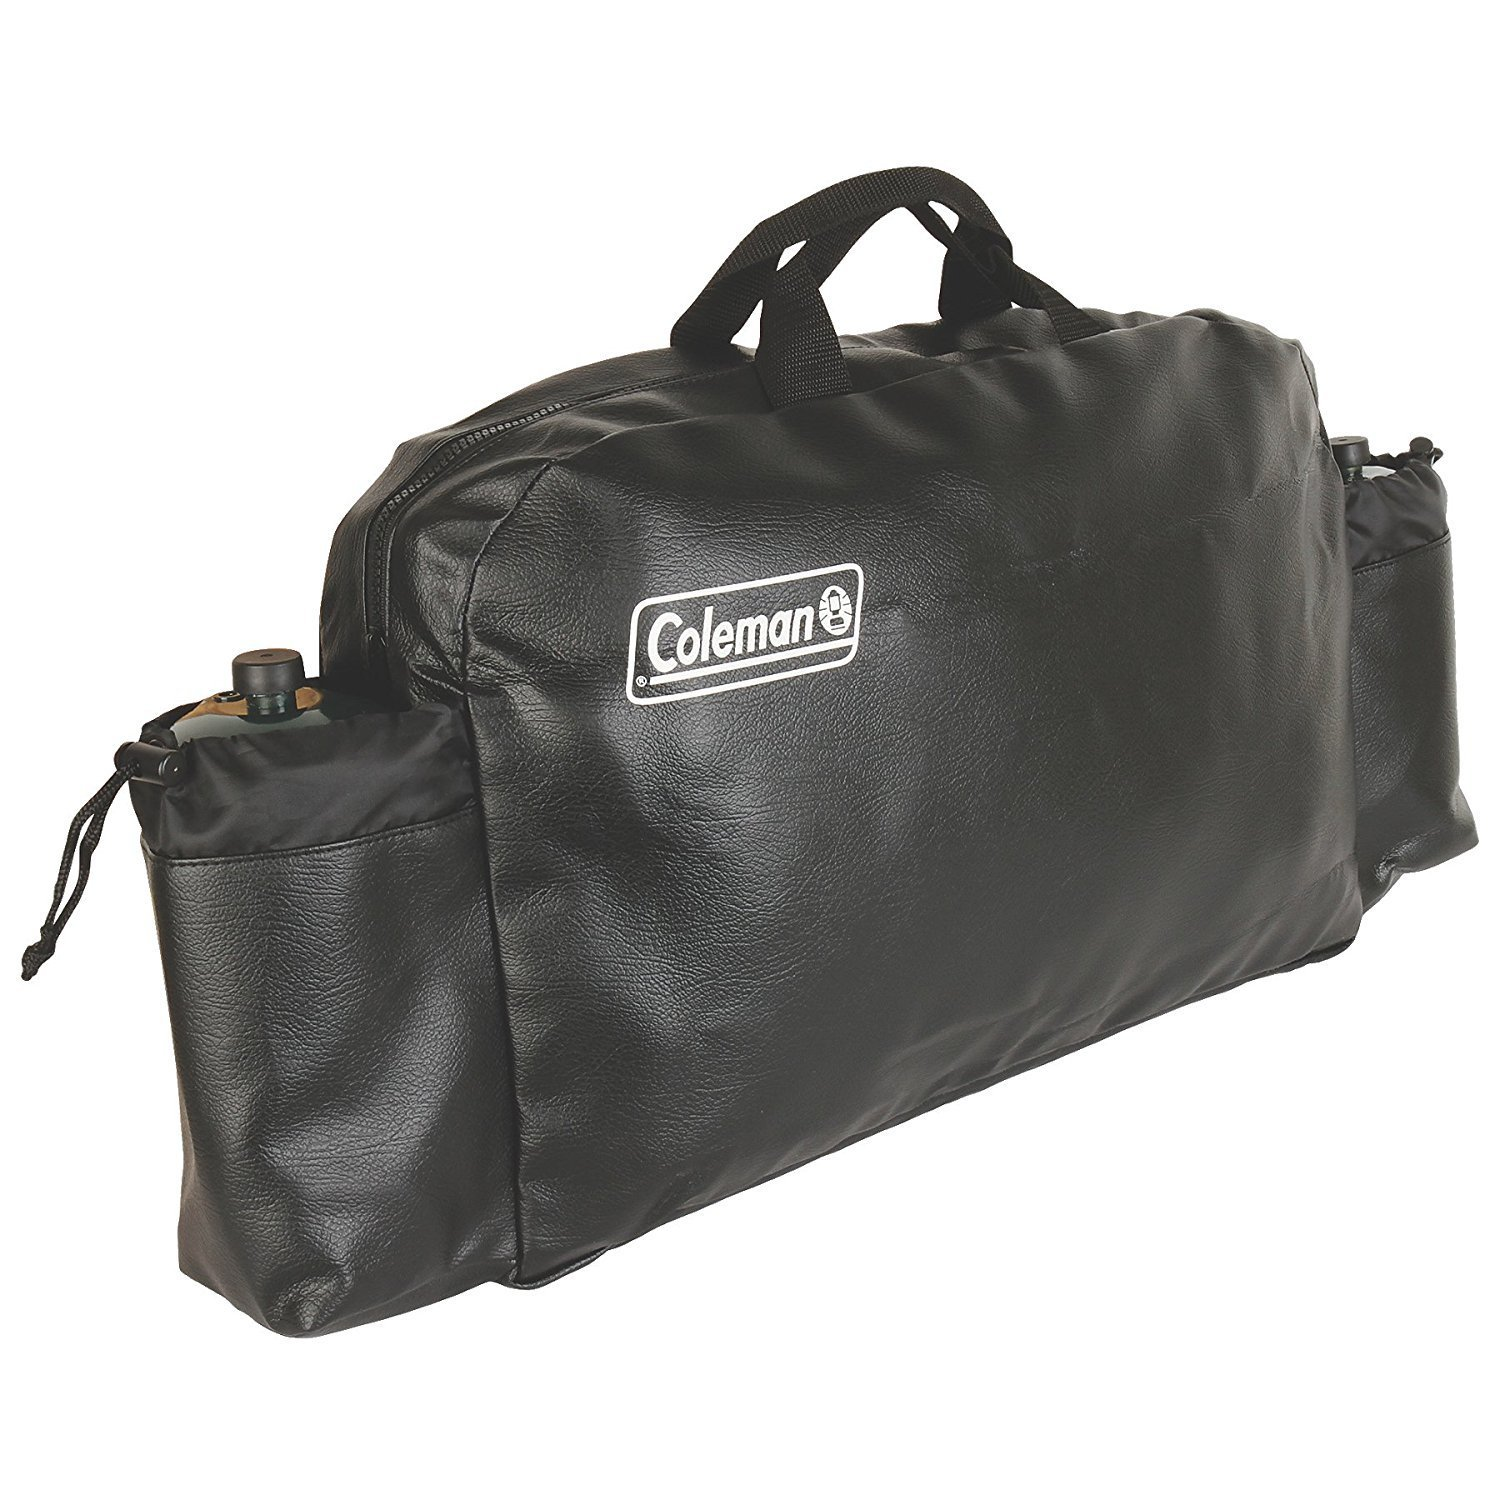 Coleman Camp Stove Carry Case, Medium by Coleman